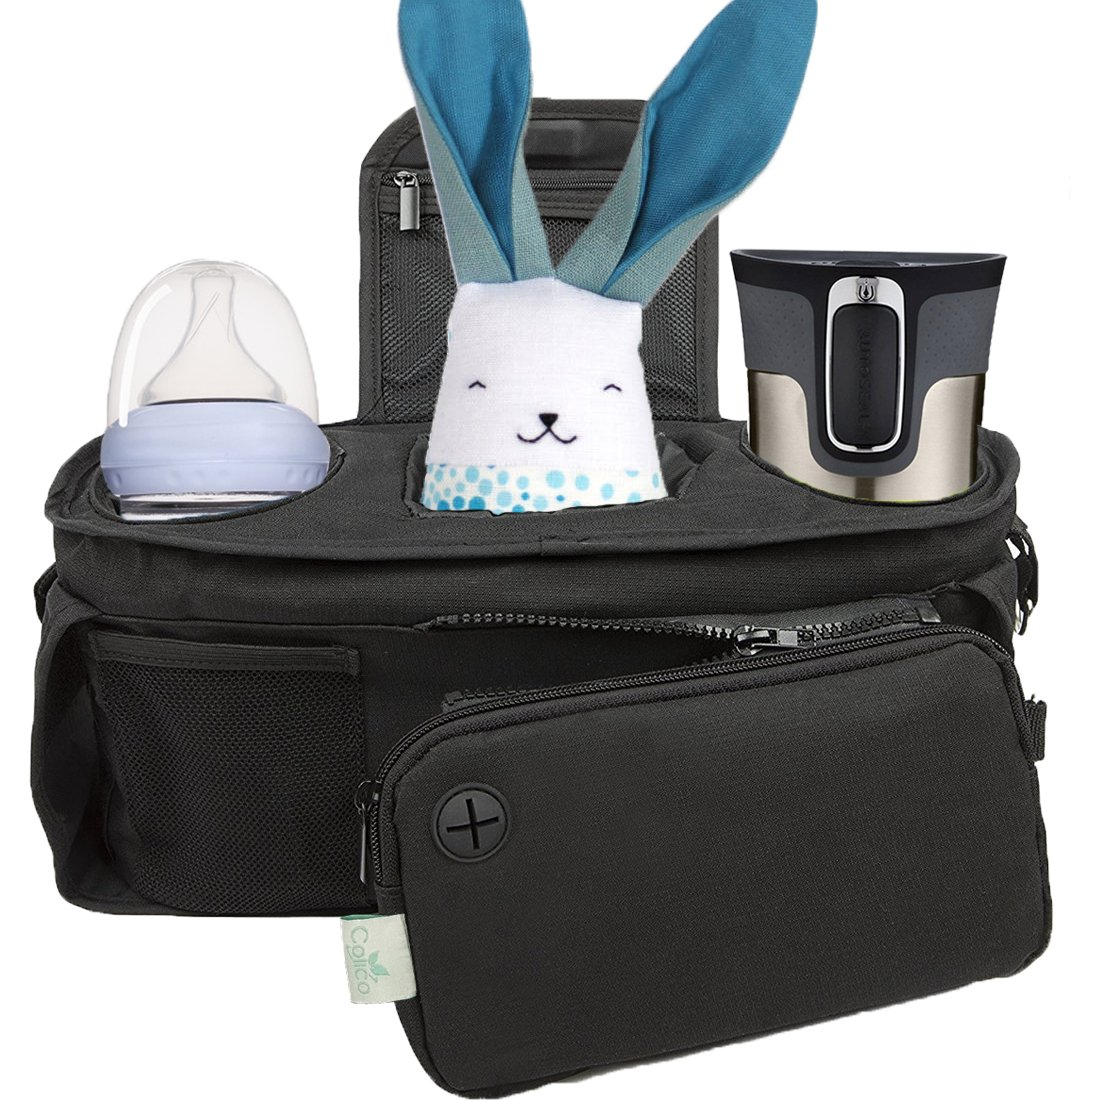 Baby Stroller Organizer Bag, Tray, Bottle Cup Holder, with Multiple Pockets & Compartments for Phone, Money, ID, Sunglasses, Snacks, Coffee, Extra Diaper. Separate Zippered Removable Pouch Colico